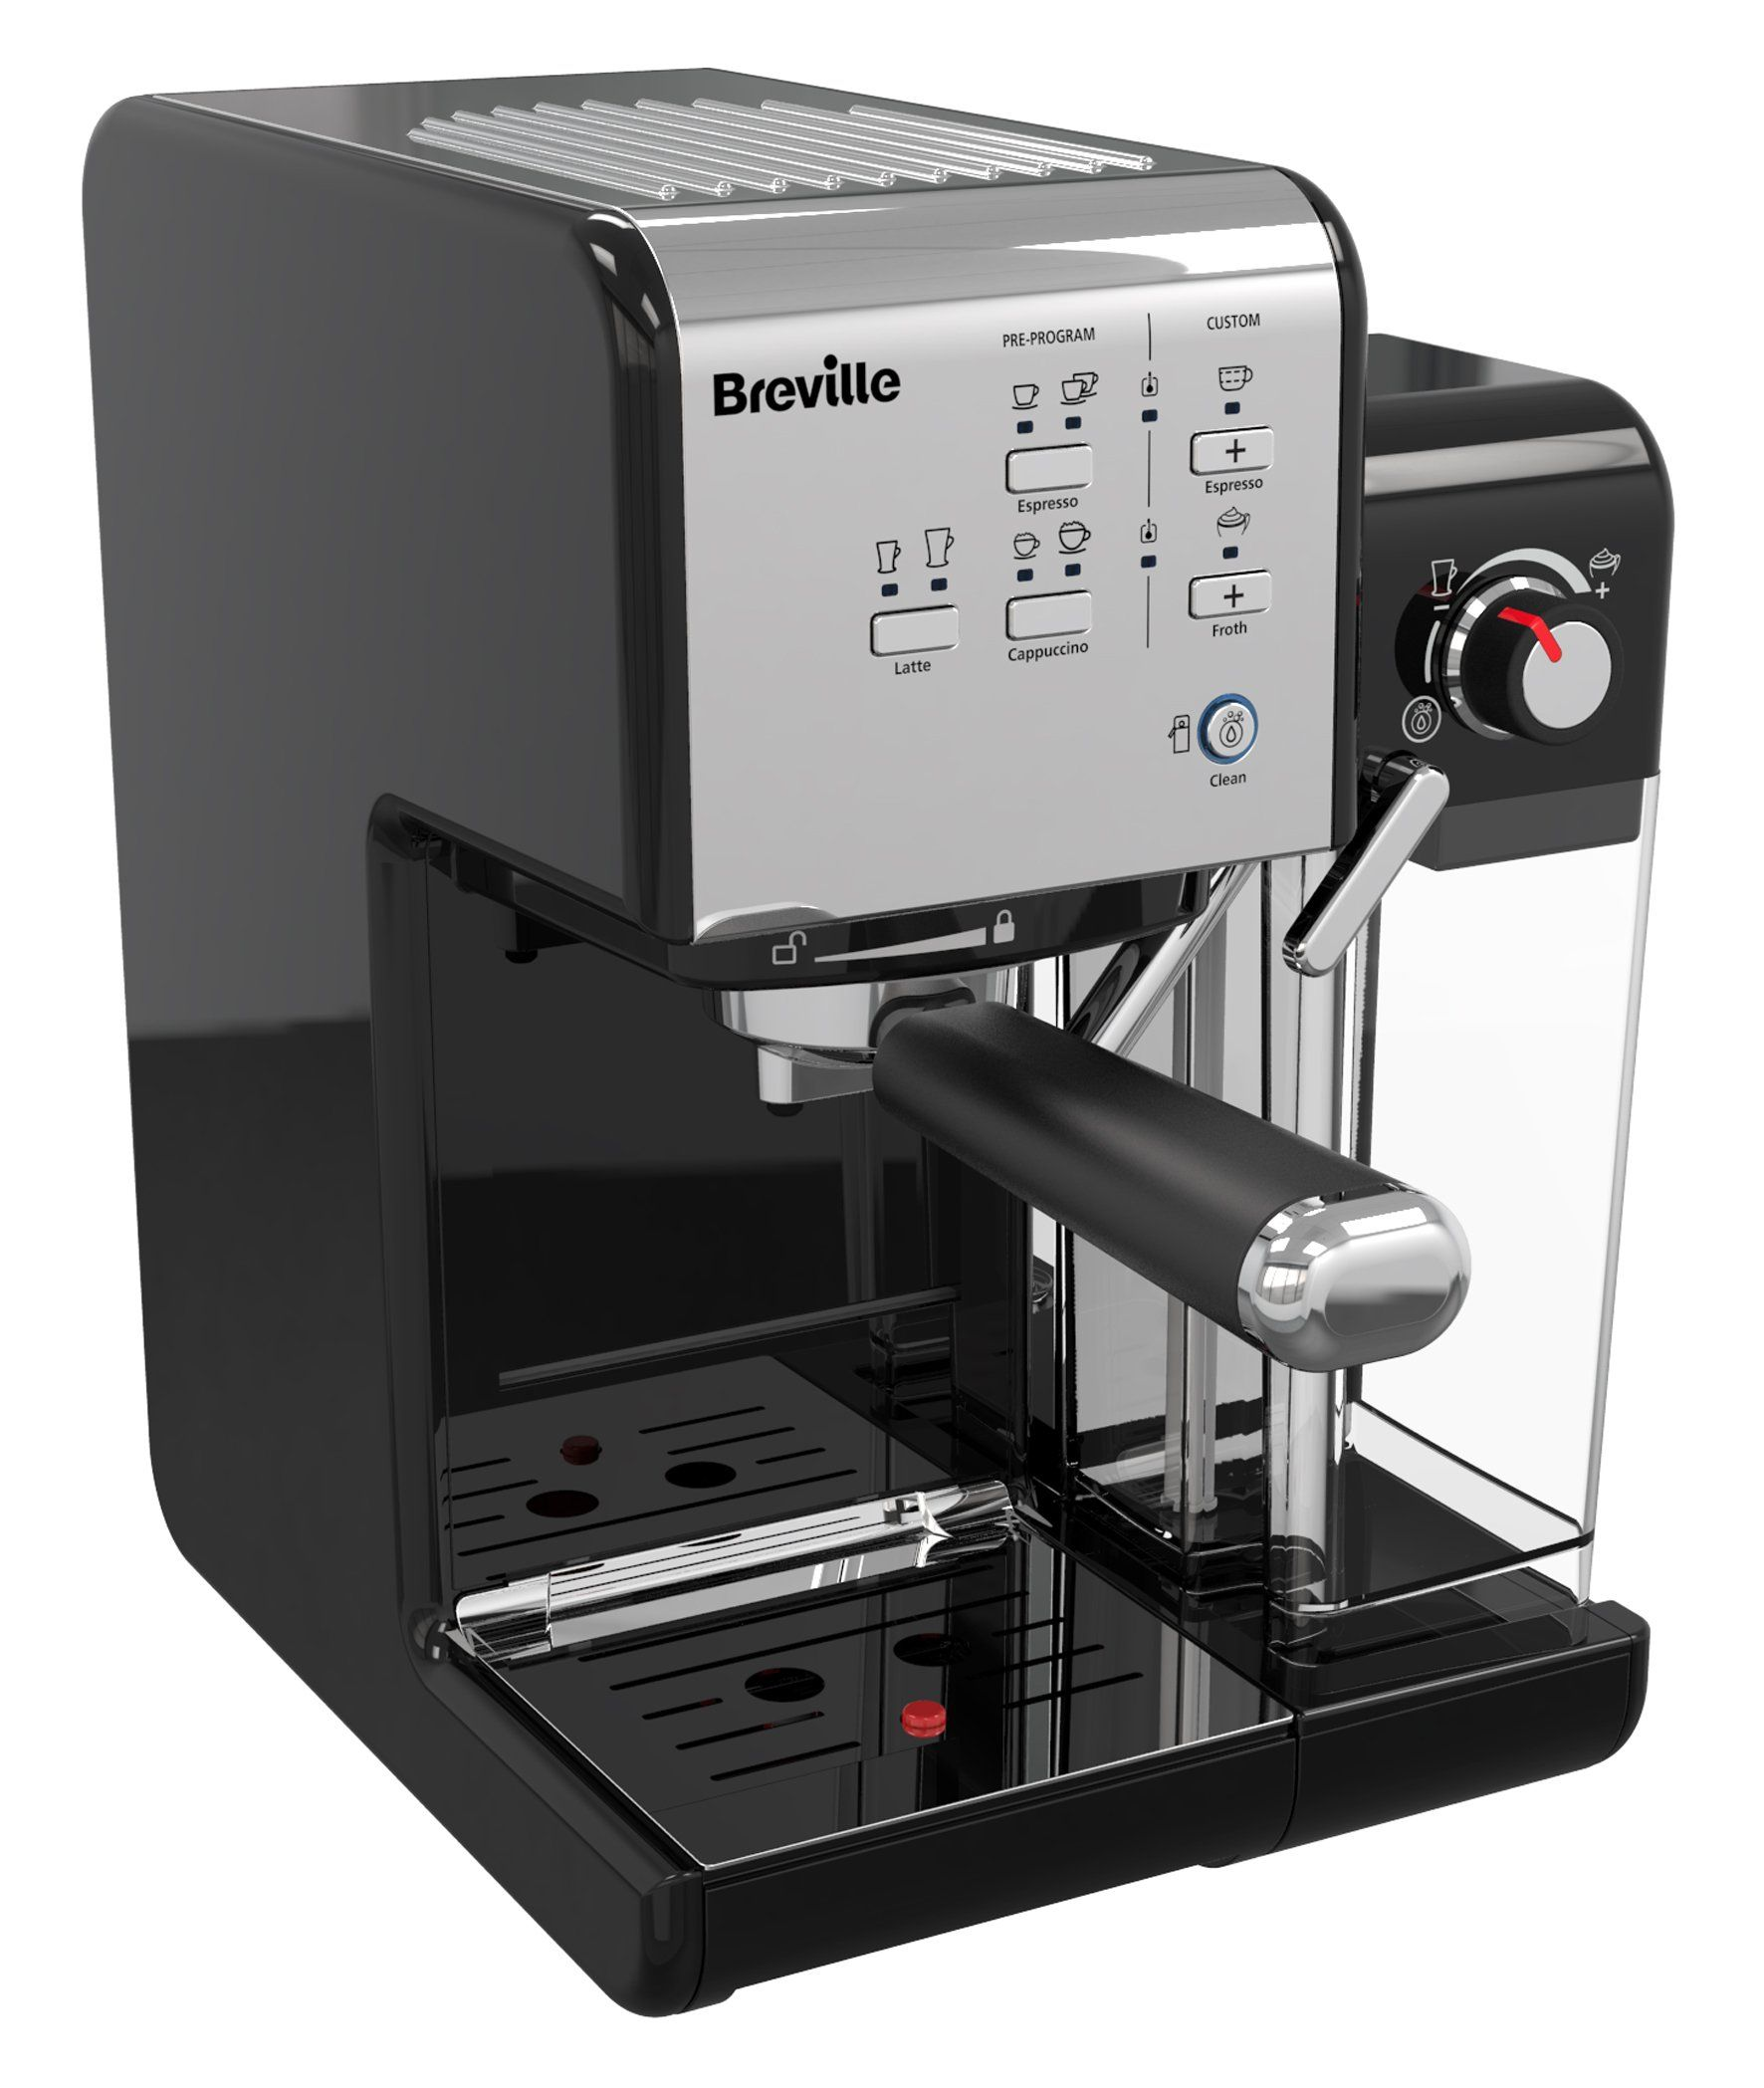 Breville One Touch Vcf107 Coffee Machine In 2020